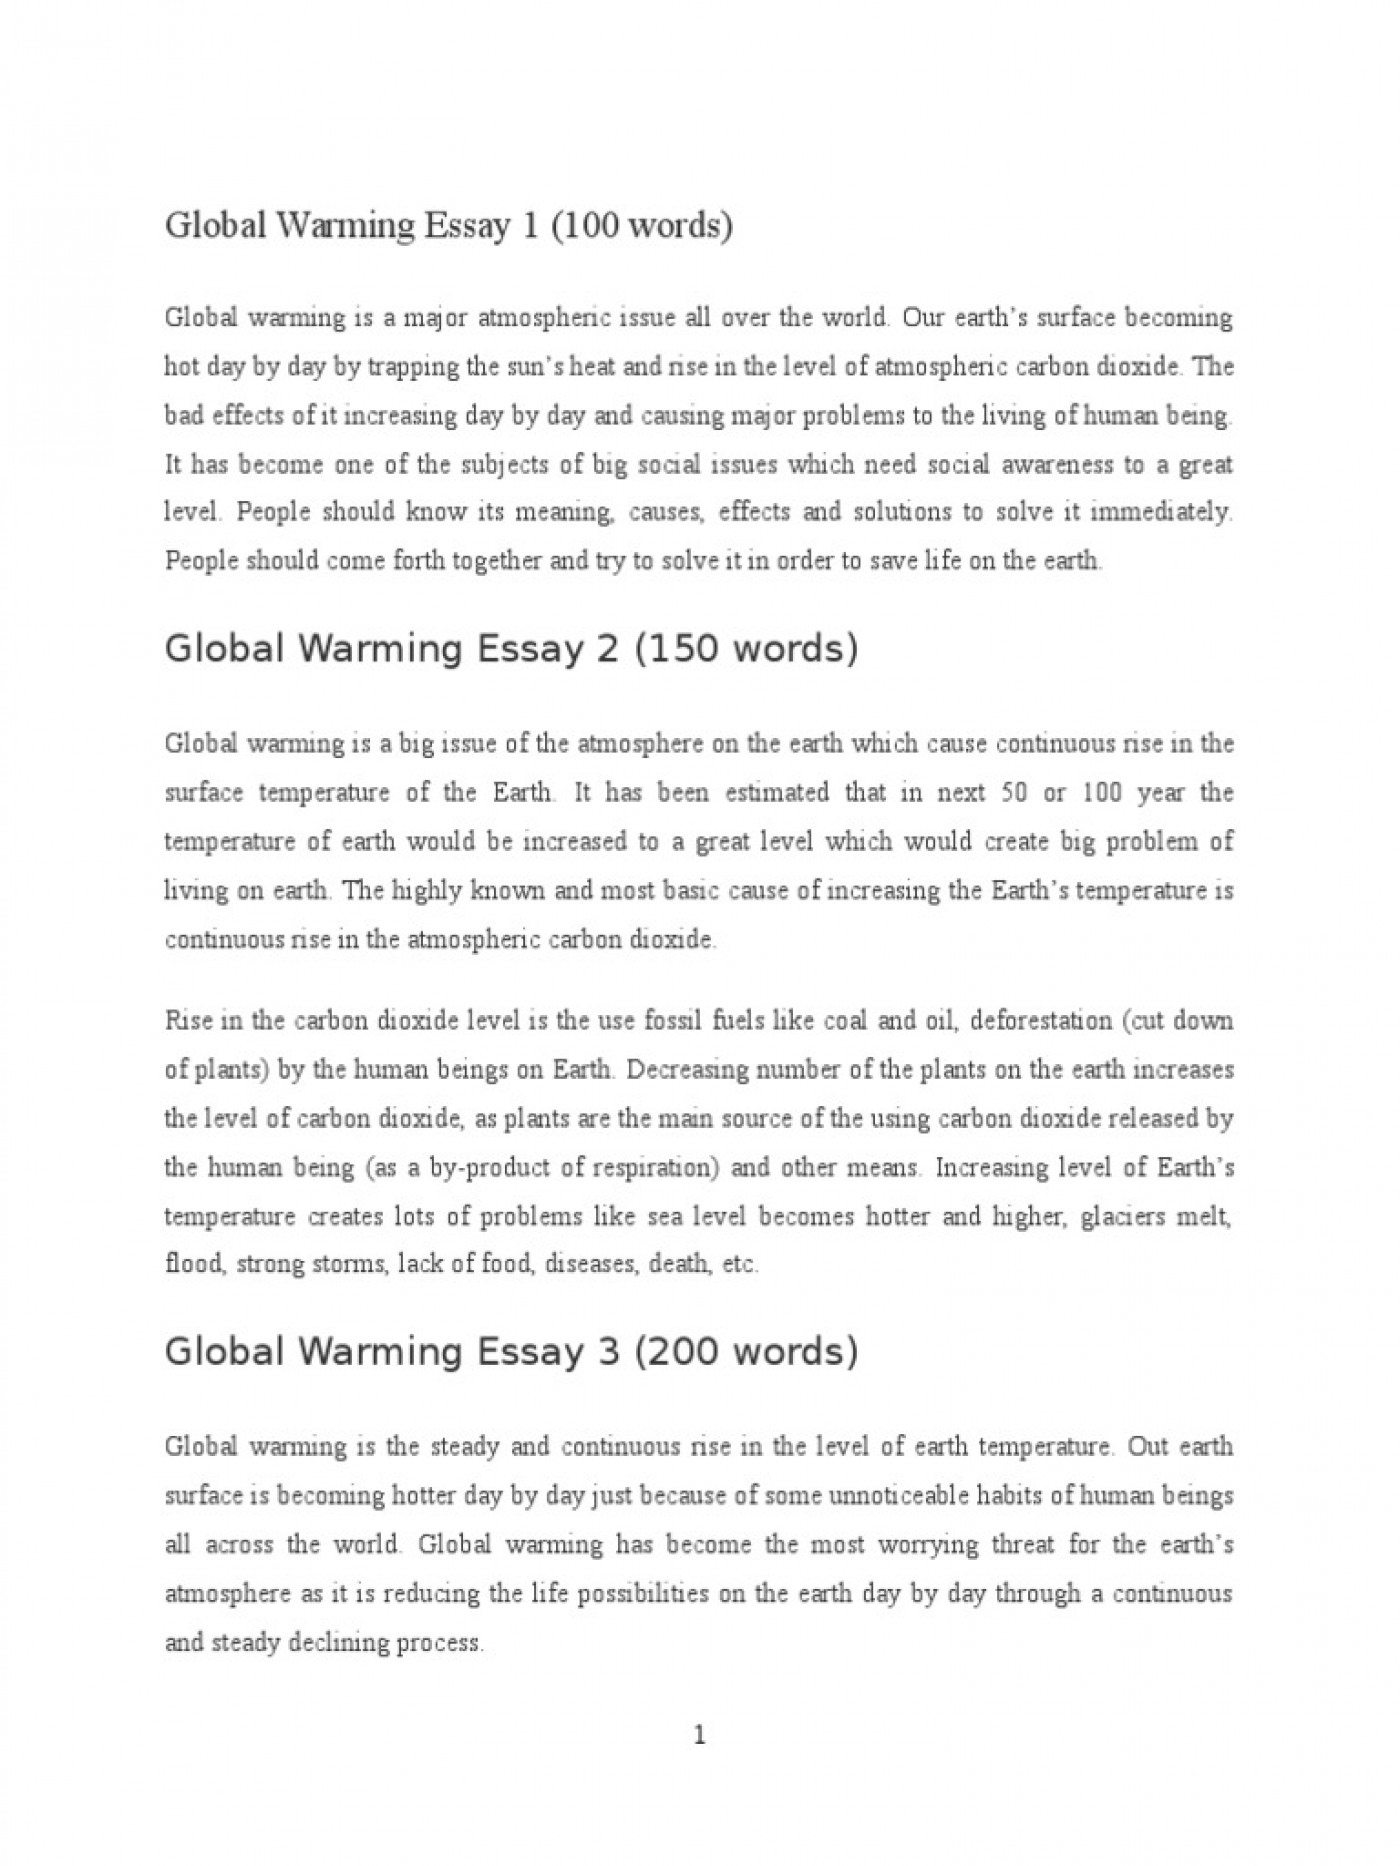 008 Global Warming Essay 1 5882e593b6d87f85288b46ba Unusual Hook Conclusion Outline 1400